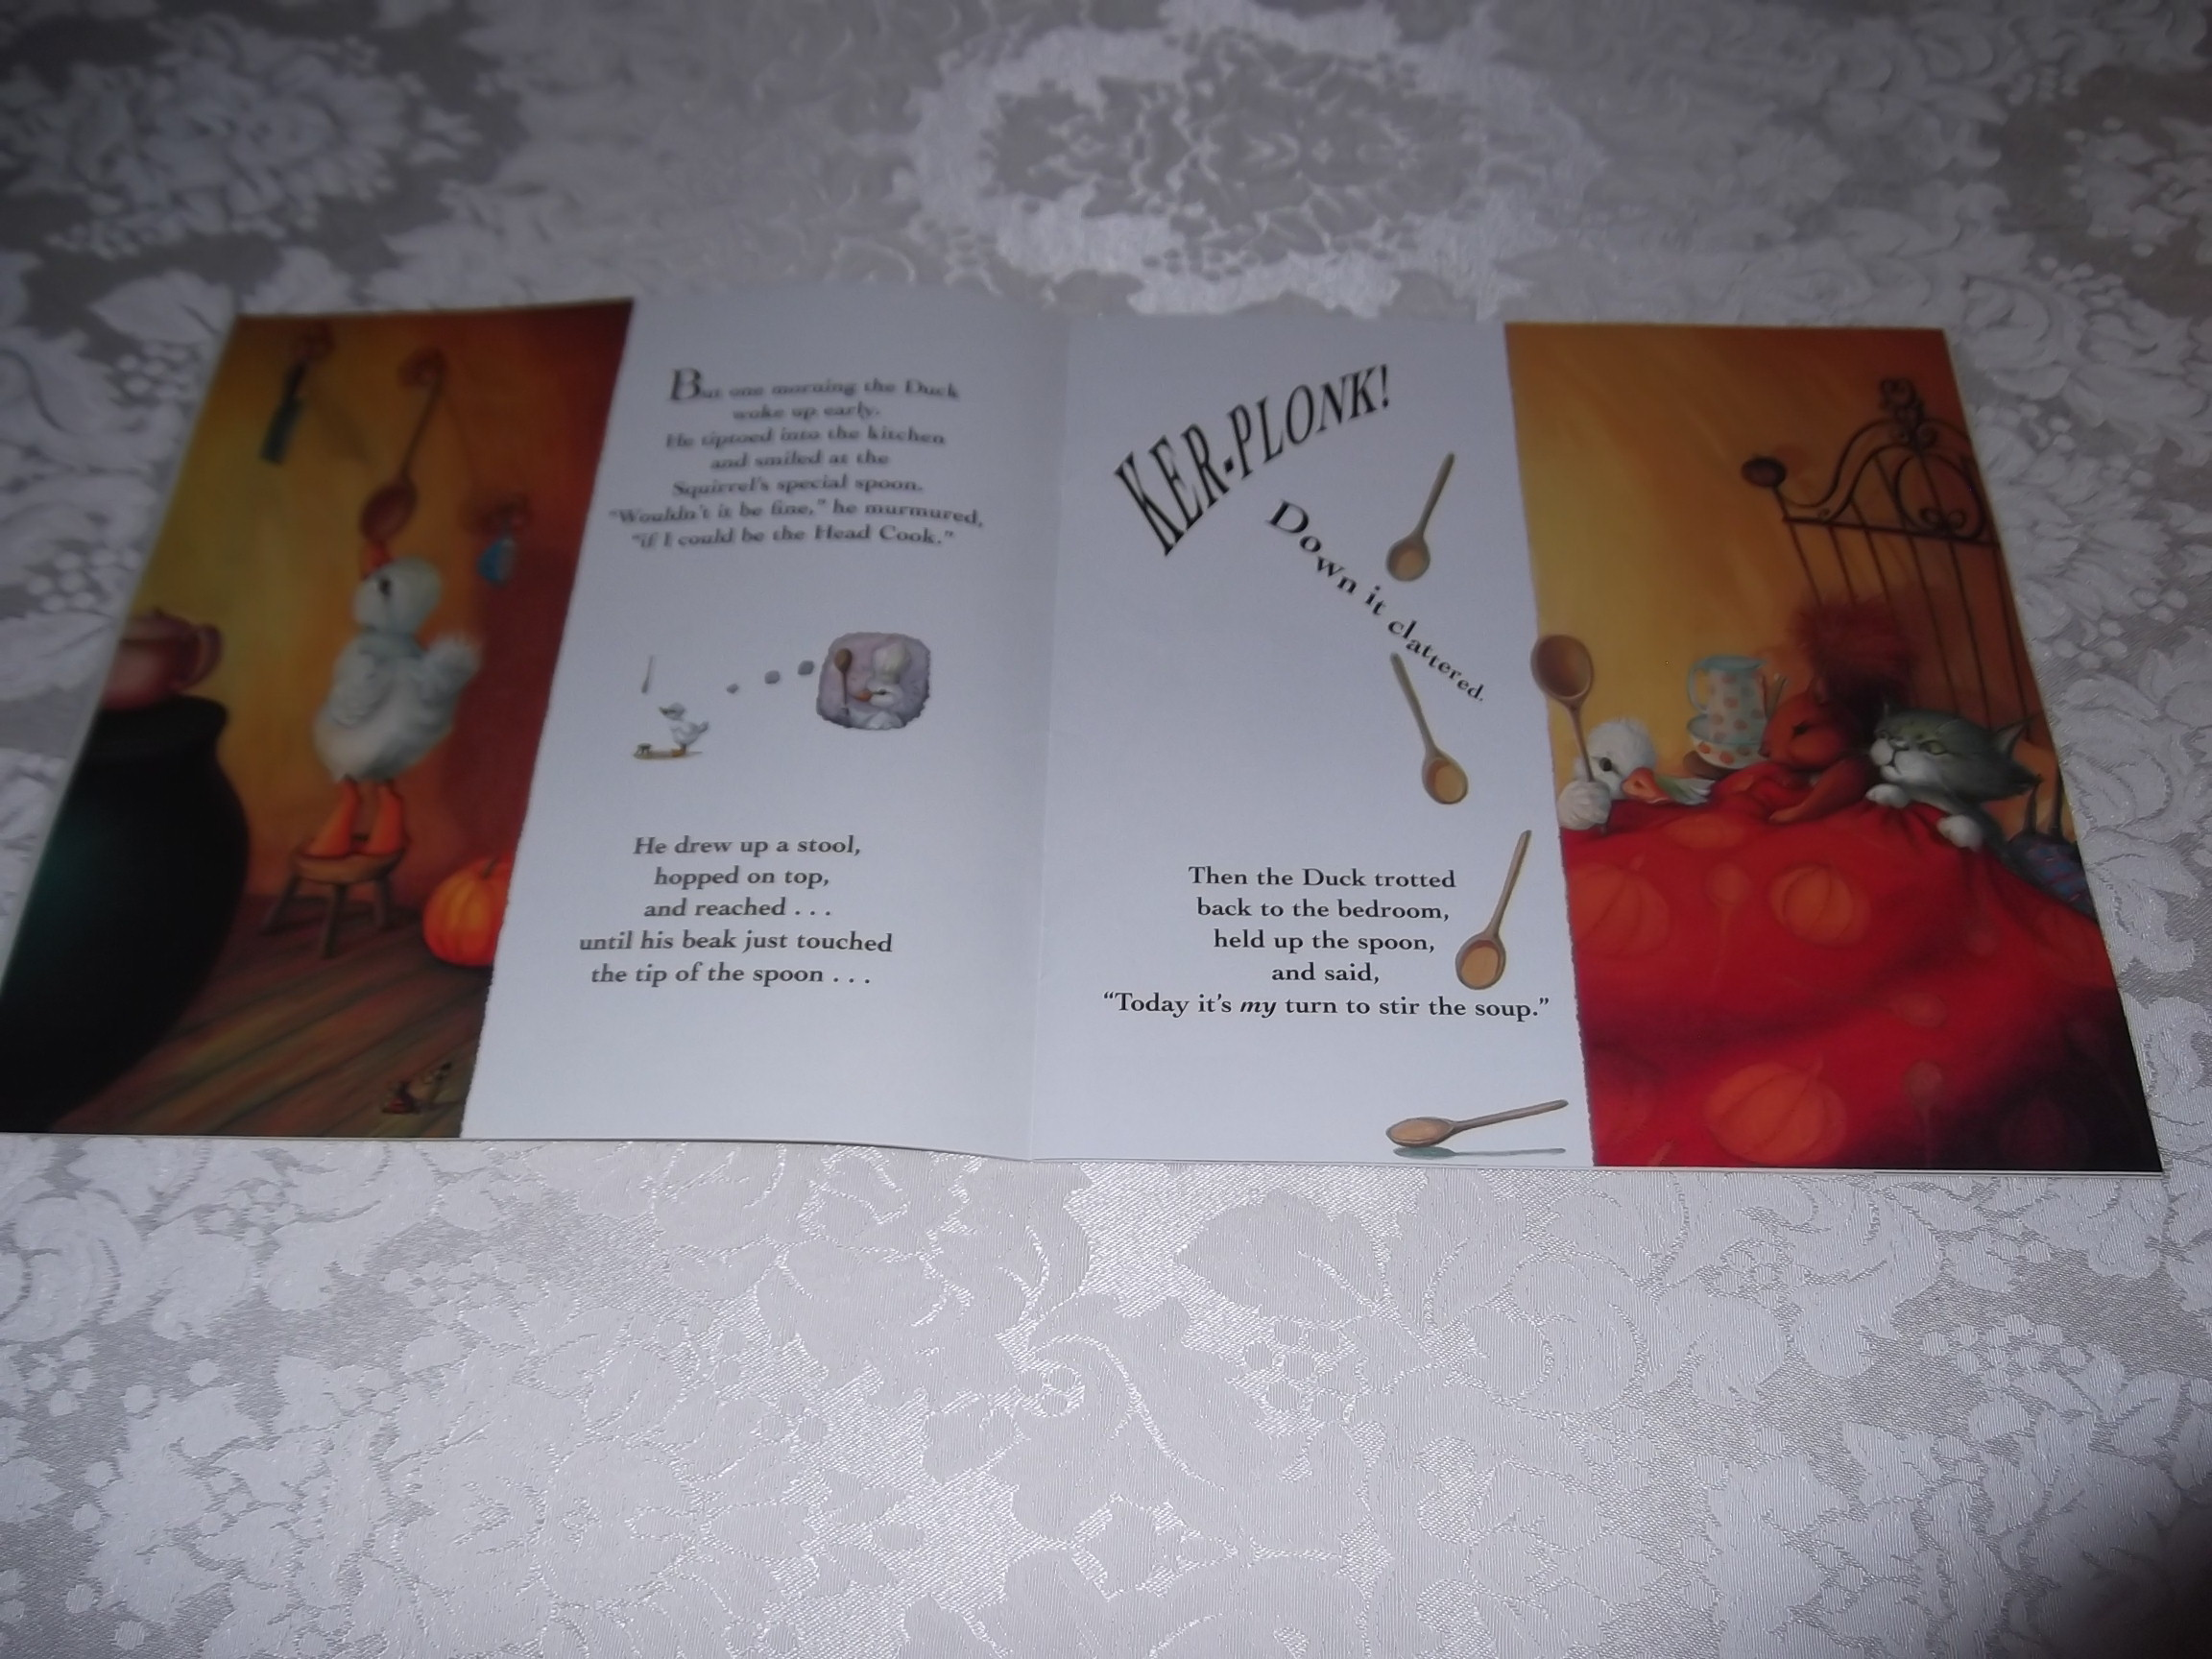 Image 2 of Pumpkin Soup Helen Cooper Brand New Softcover